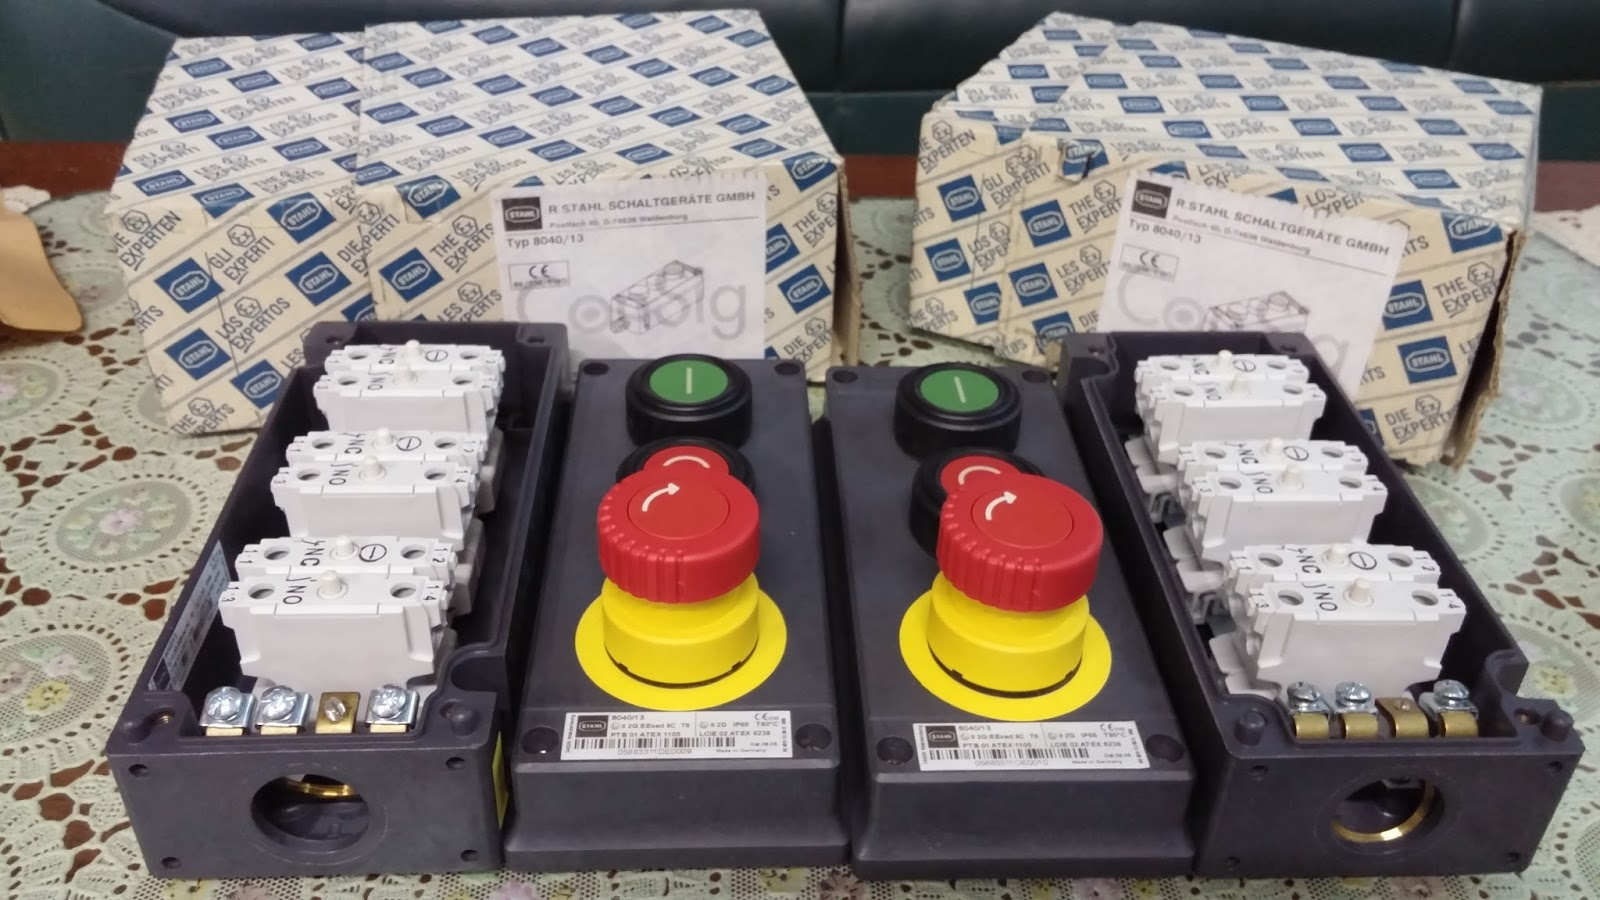 jual local control station explosion proof switch pilot lamp push button explosion proof indonesia [ 1600 x 900 Pixel ]